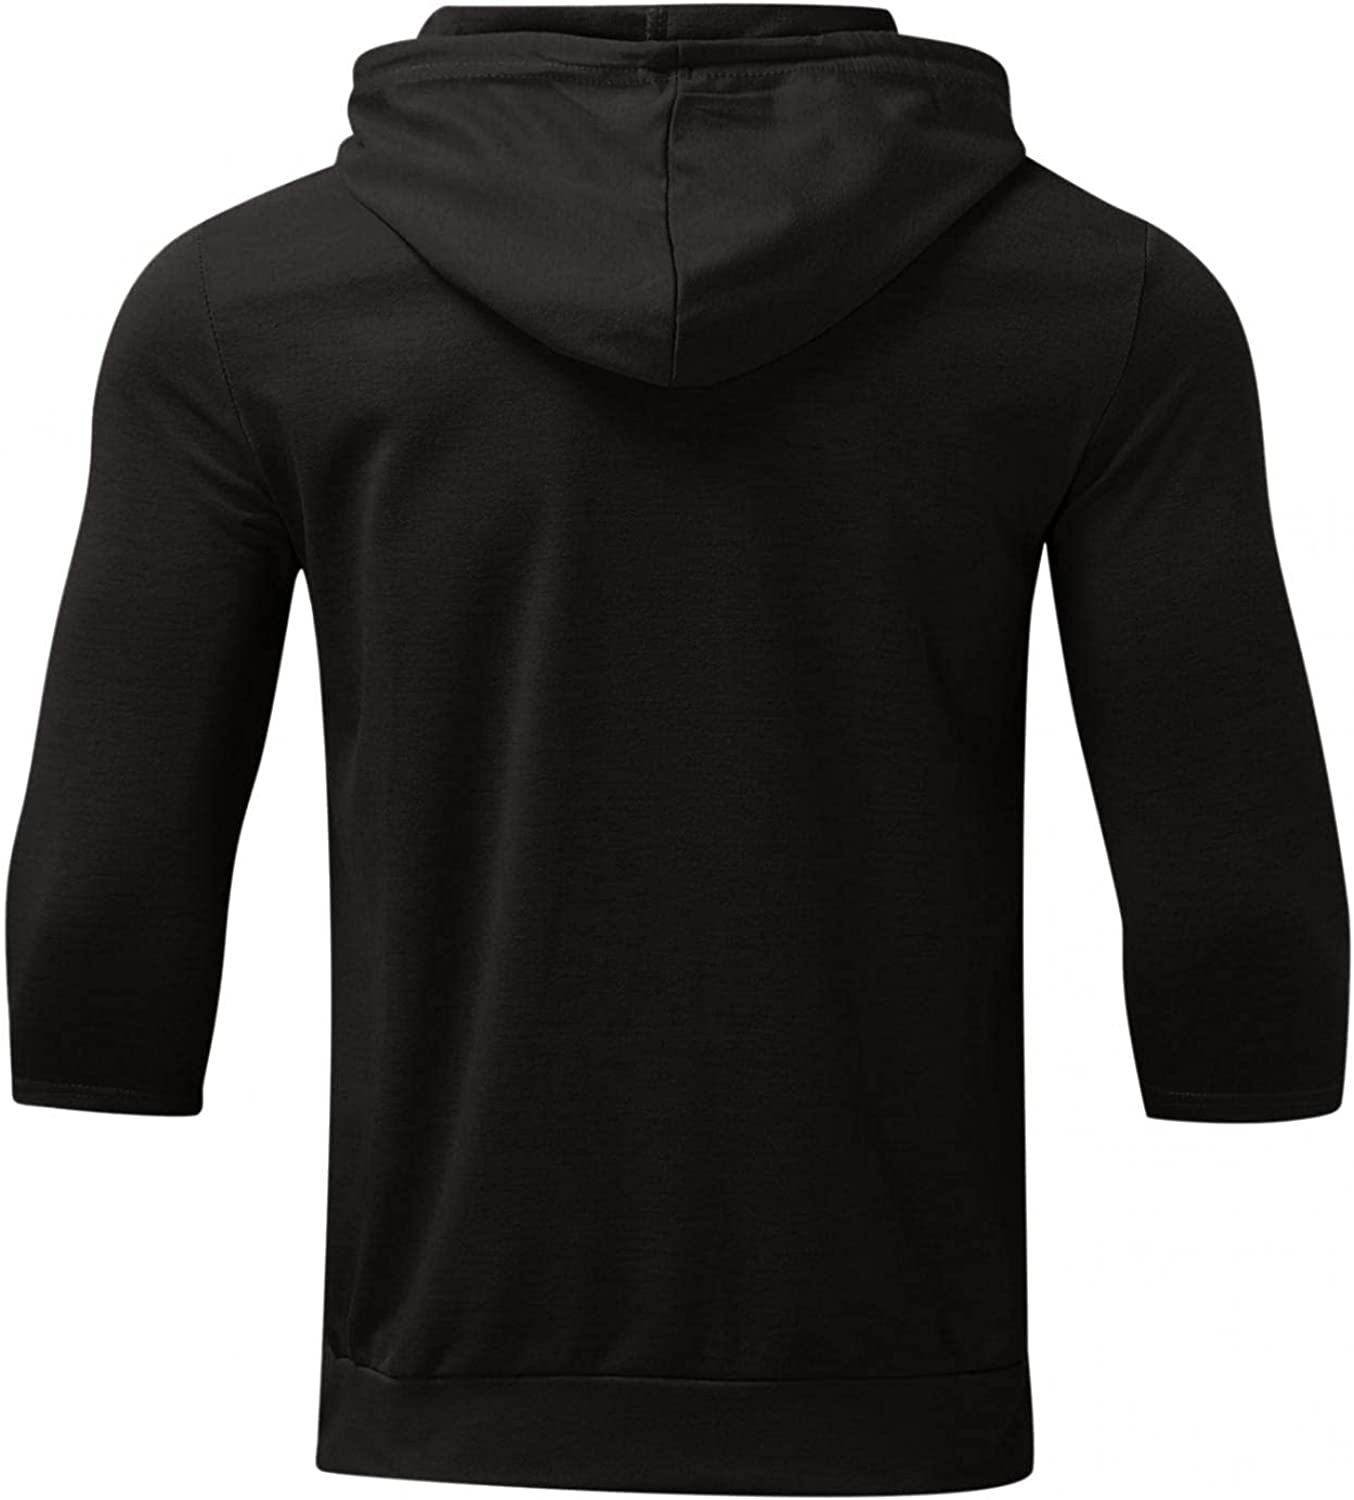 Aayomet Pullover Hoodies for Men Solid Long Sleeve Sweatshirts with Pocket Casual Workout Sport Tops Sweaters Blouses